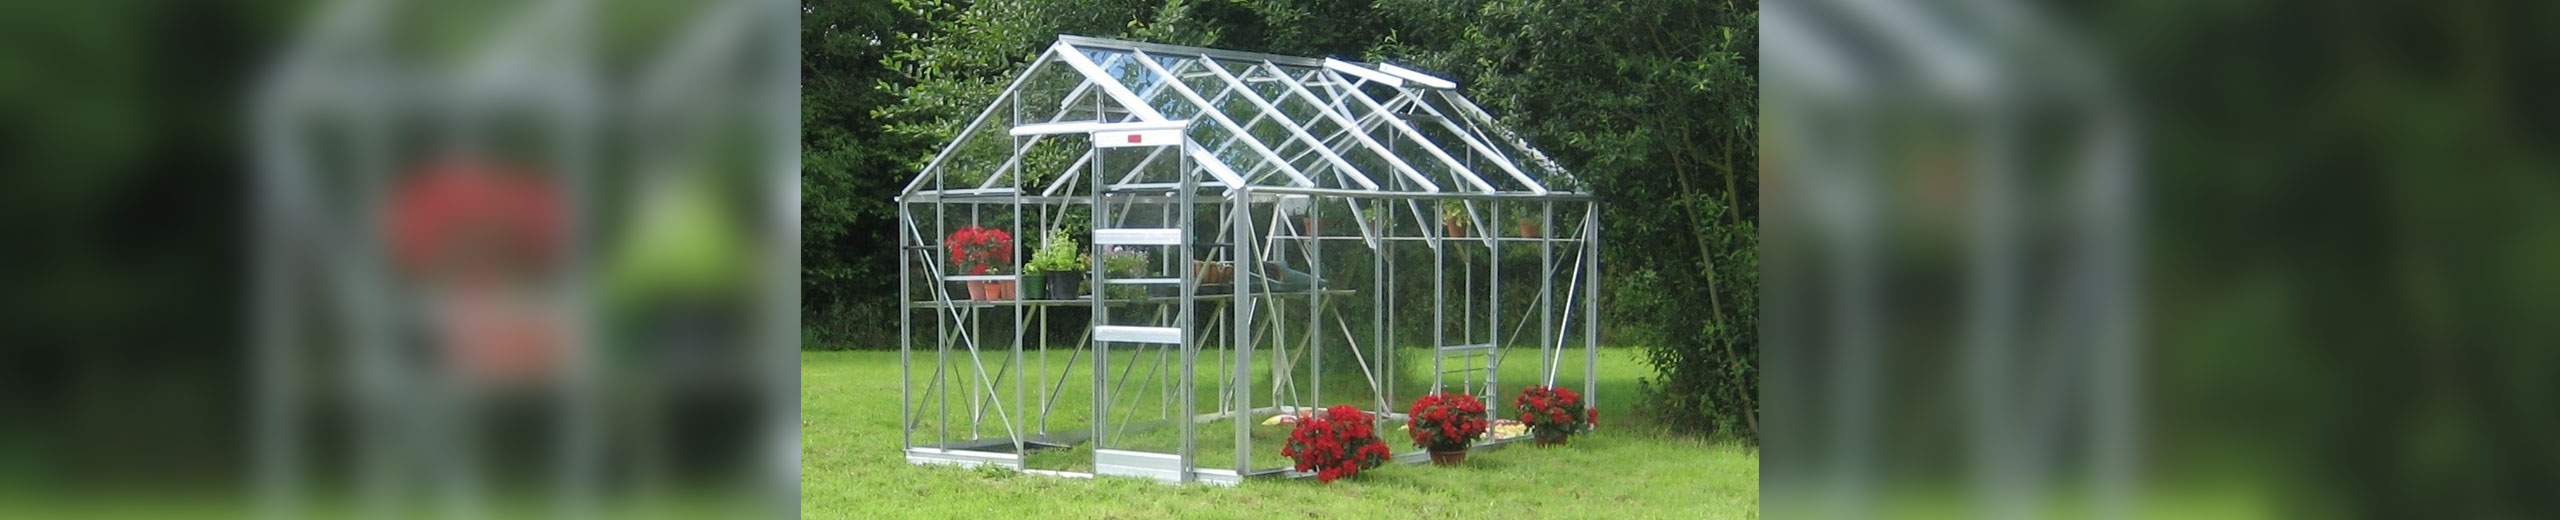 12 x 8 Belmont greenhouse